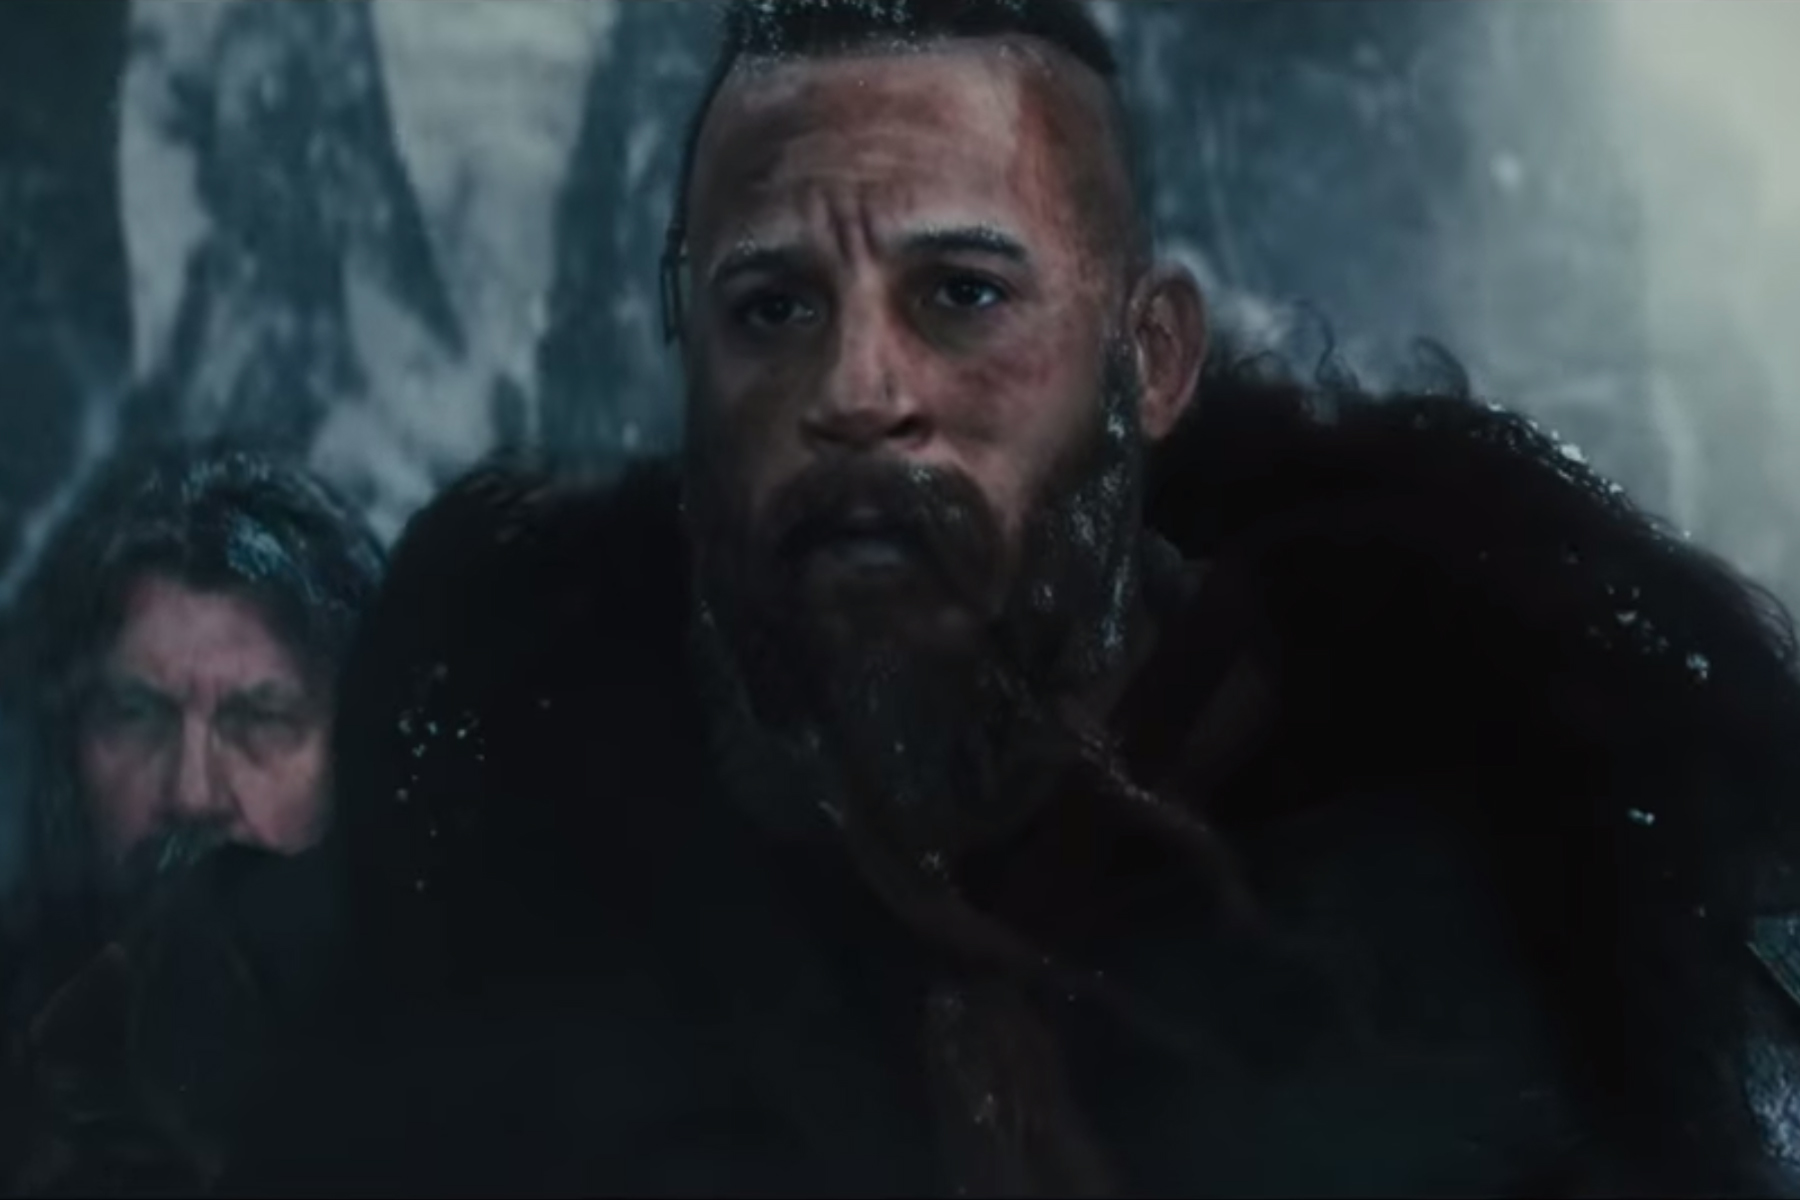 Vin Diesel Lives Forever in 'The Last Witch Hunter'